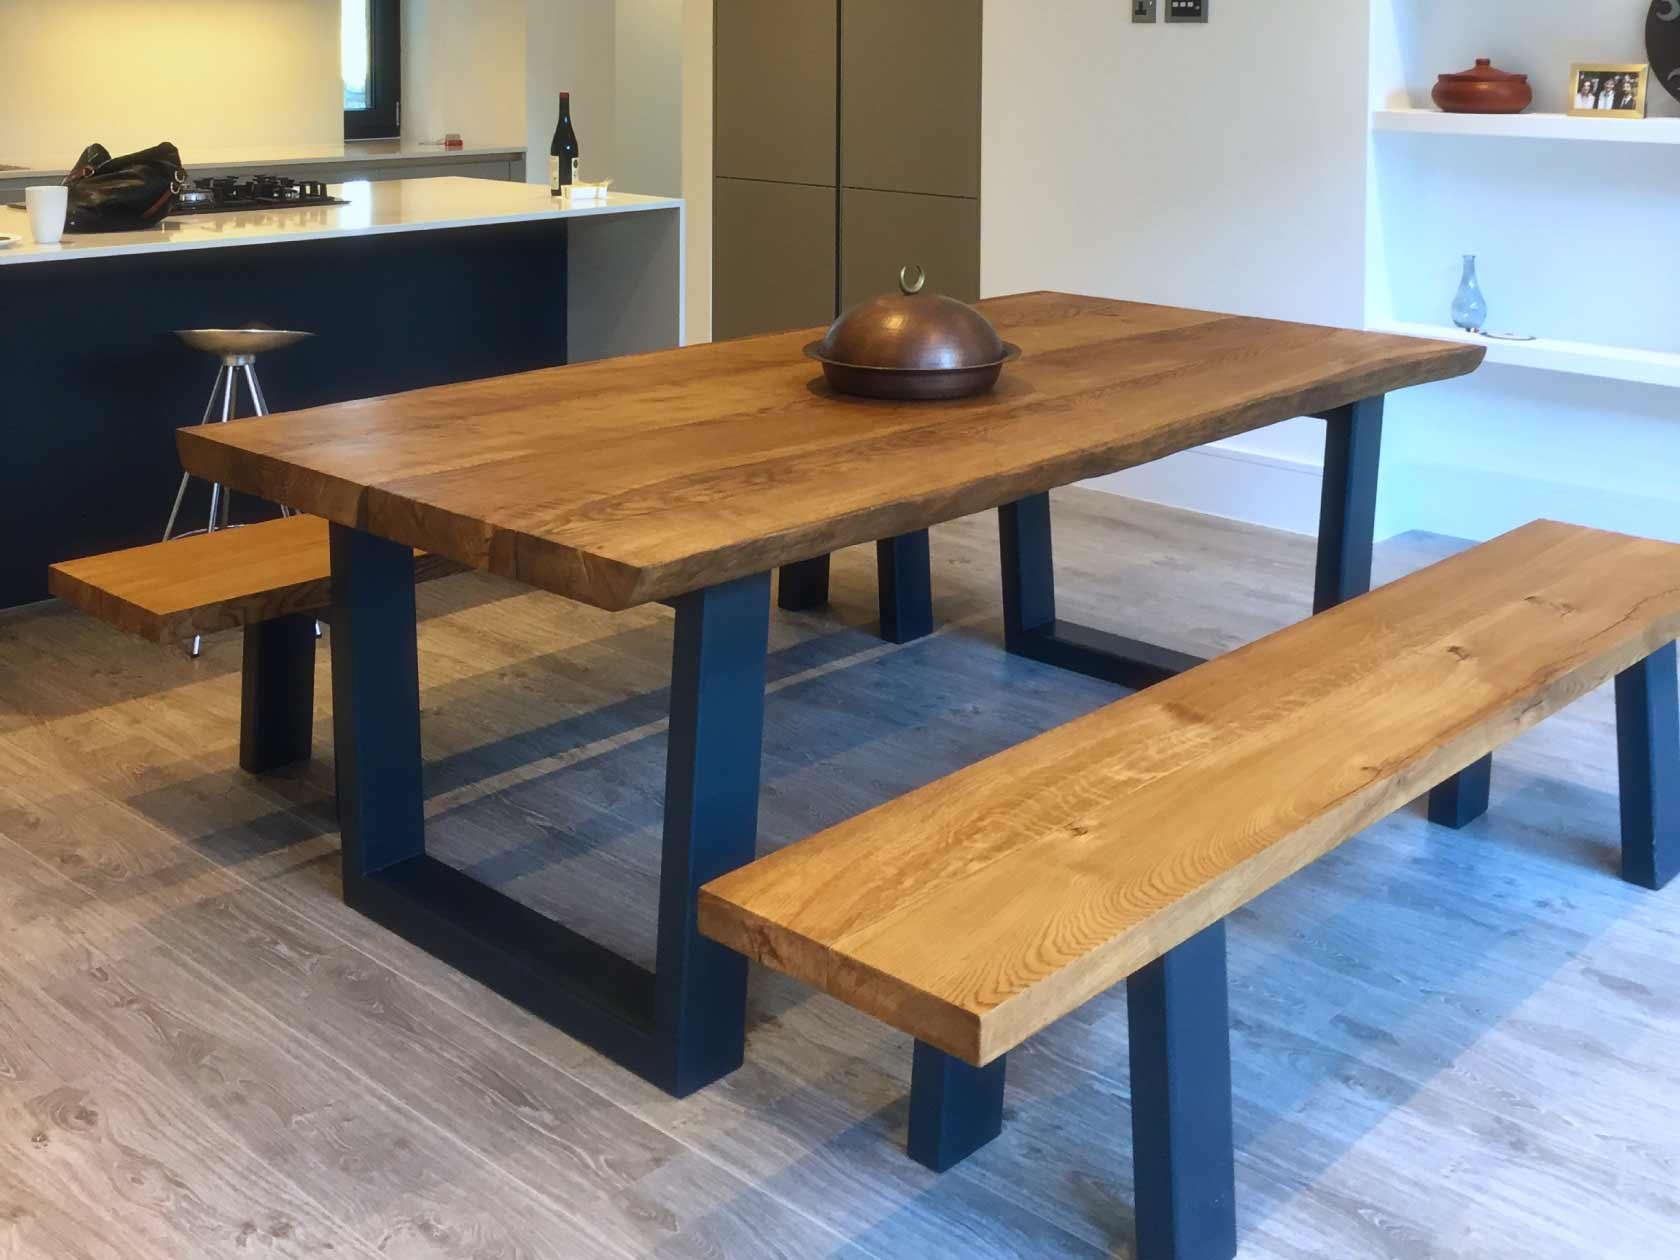 Rustic Dining Table With Bench From Abacus Tables